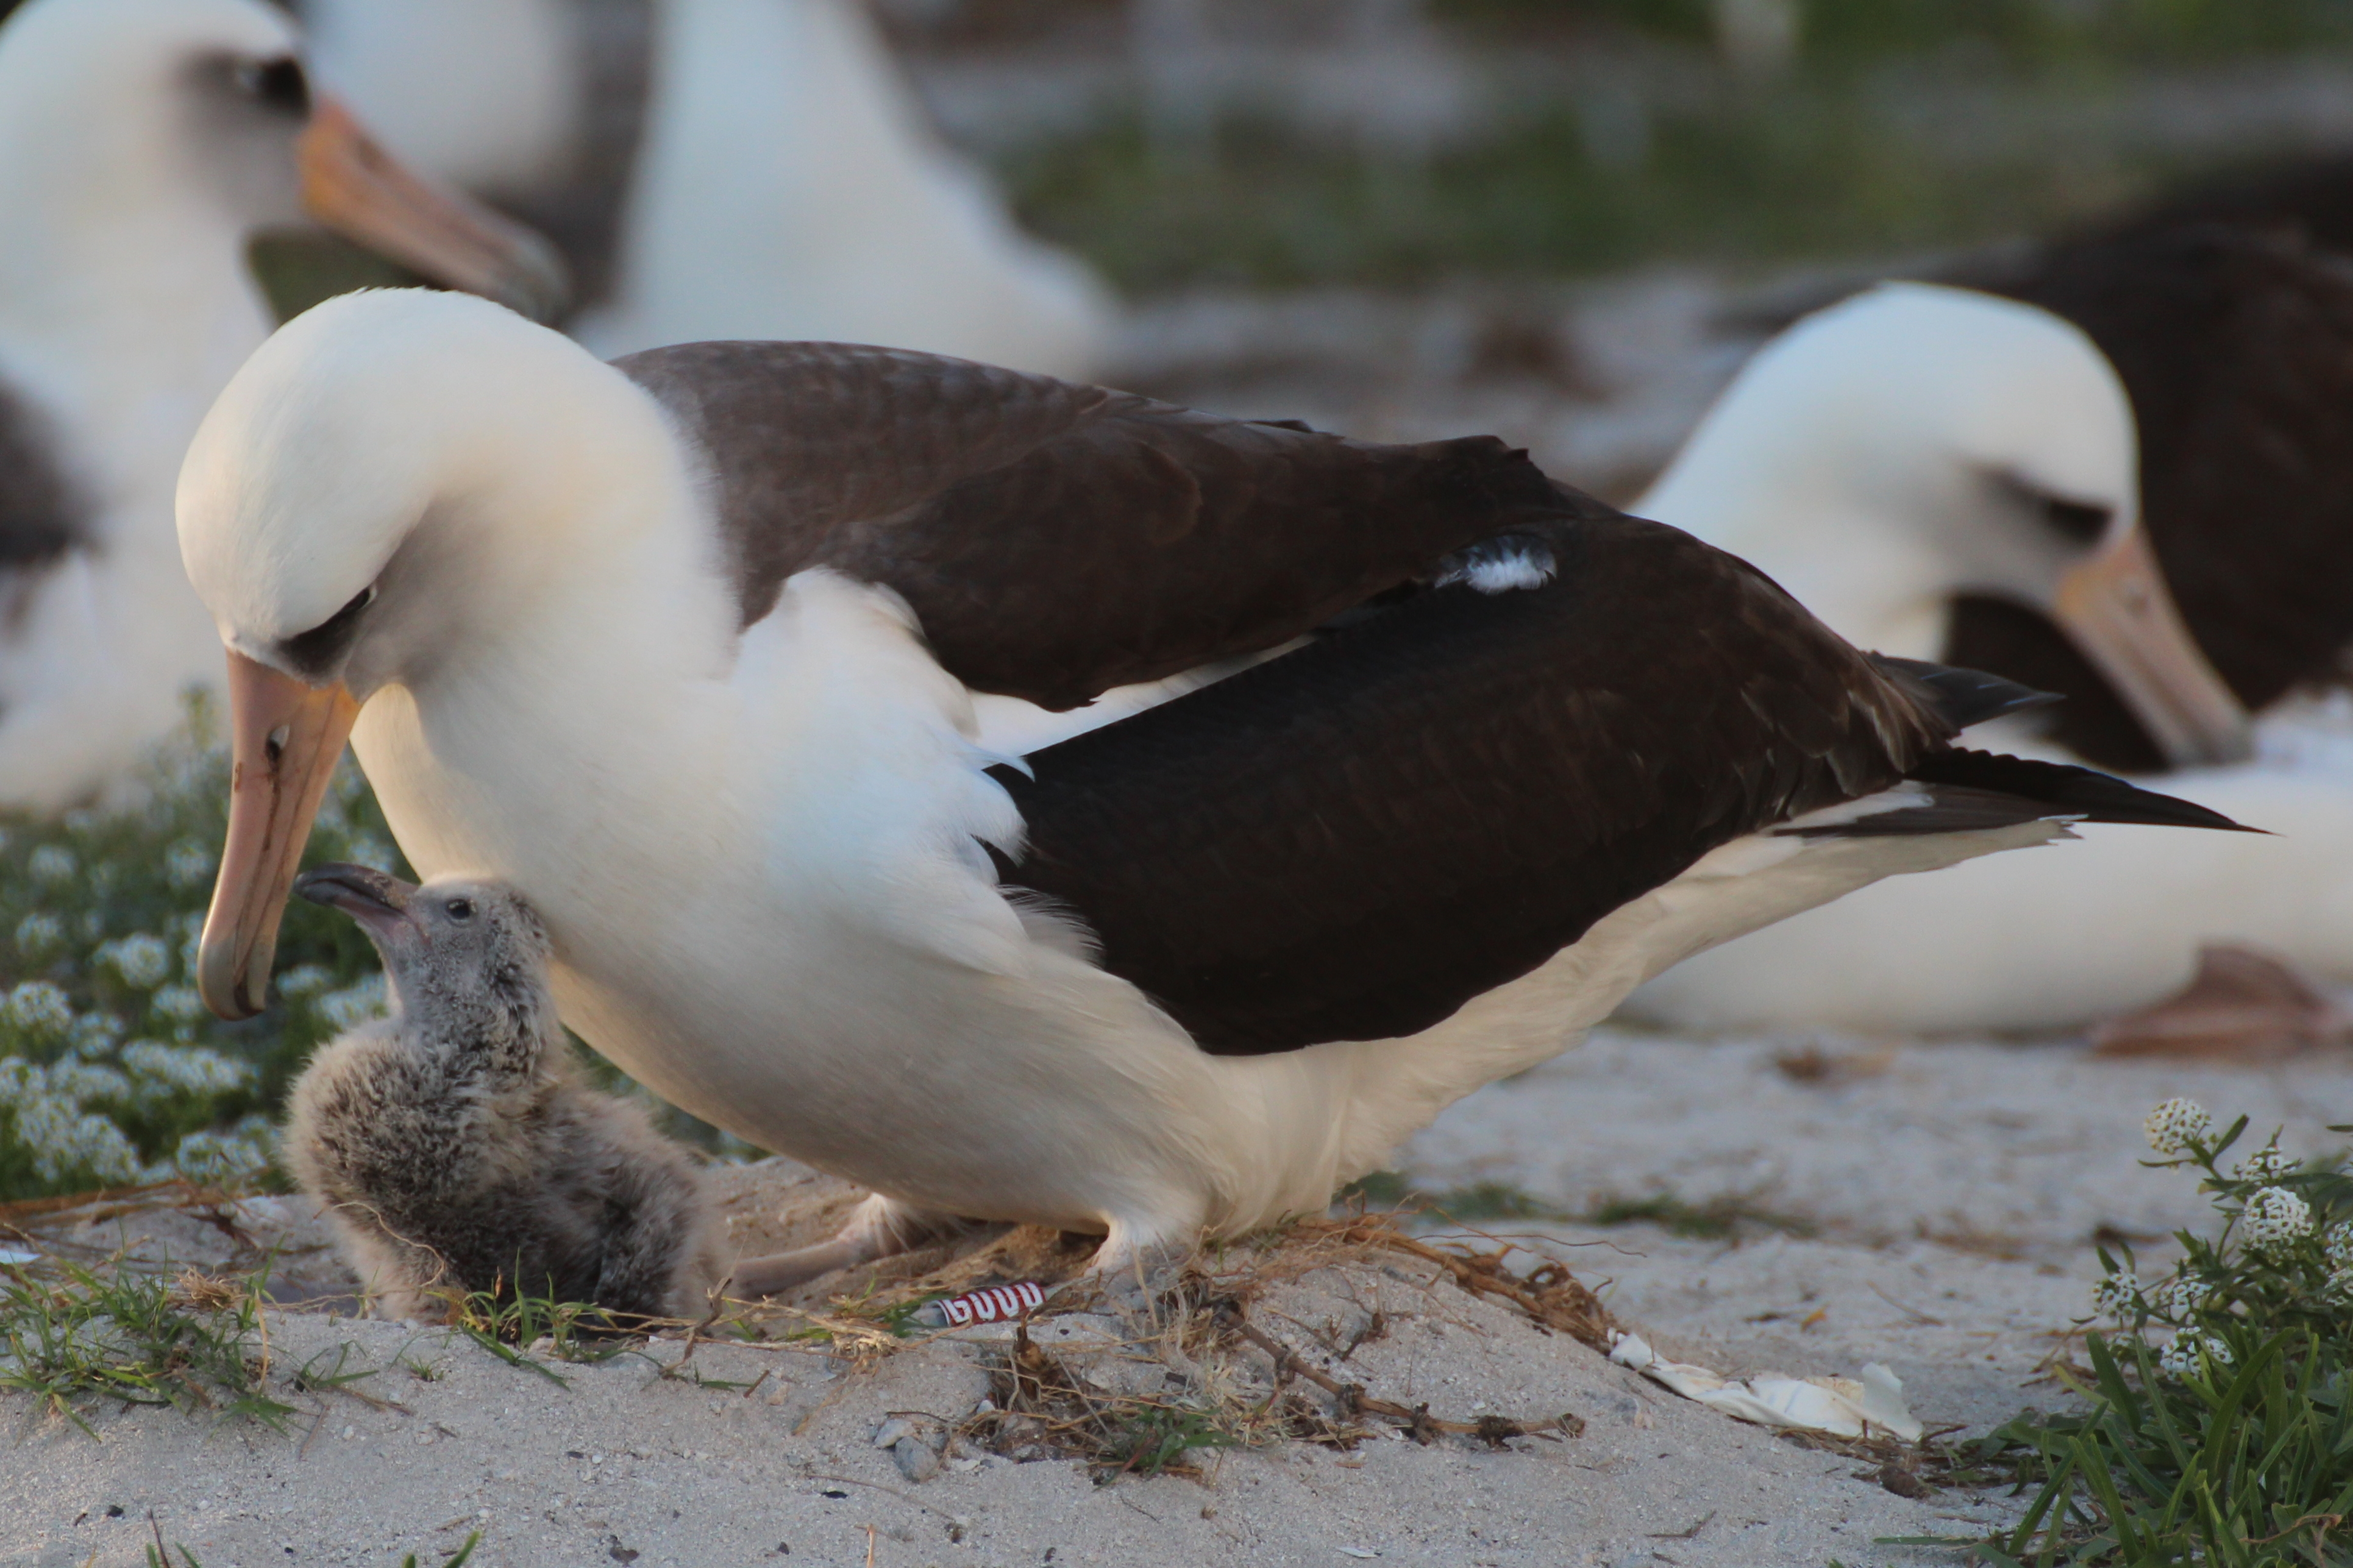 """Wisdom, the world's oldest known bird, with her chick in 2016, while her mate, Akeakamai (meaning """"desire for wisdom"""" in Hawaiian) is out foraging. Kiah Walker/USFWS Volunteer"""